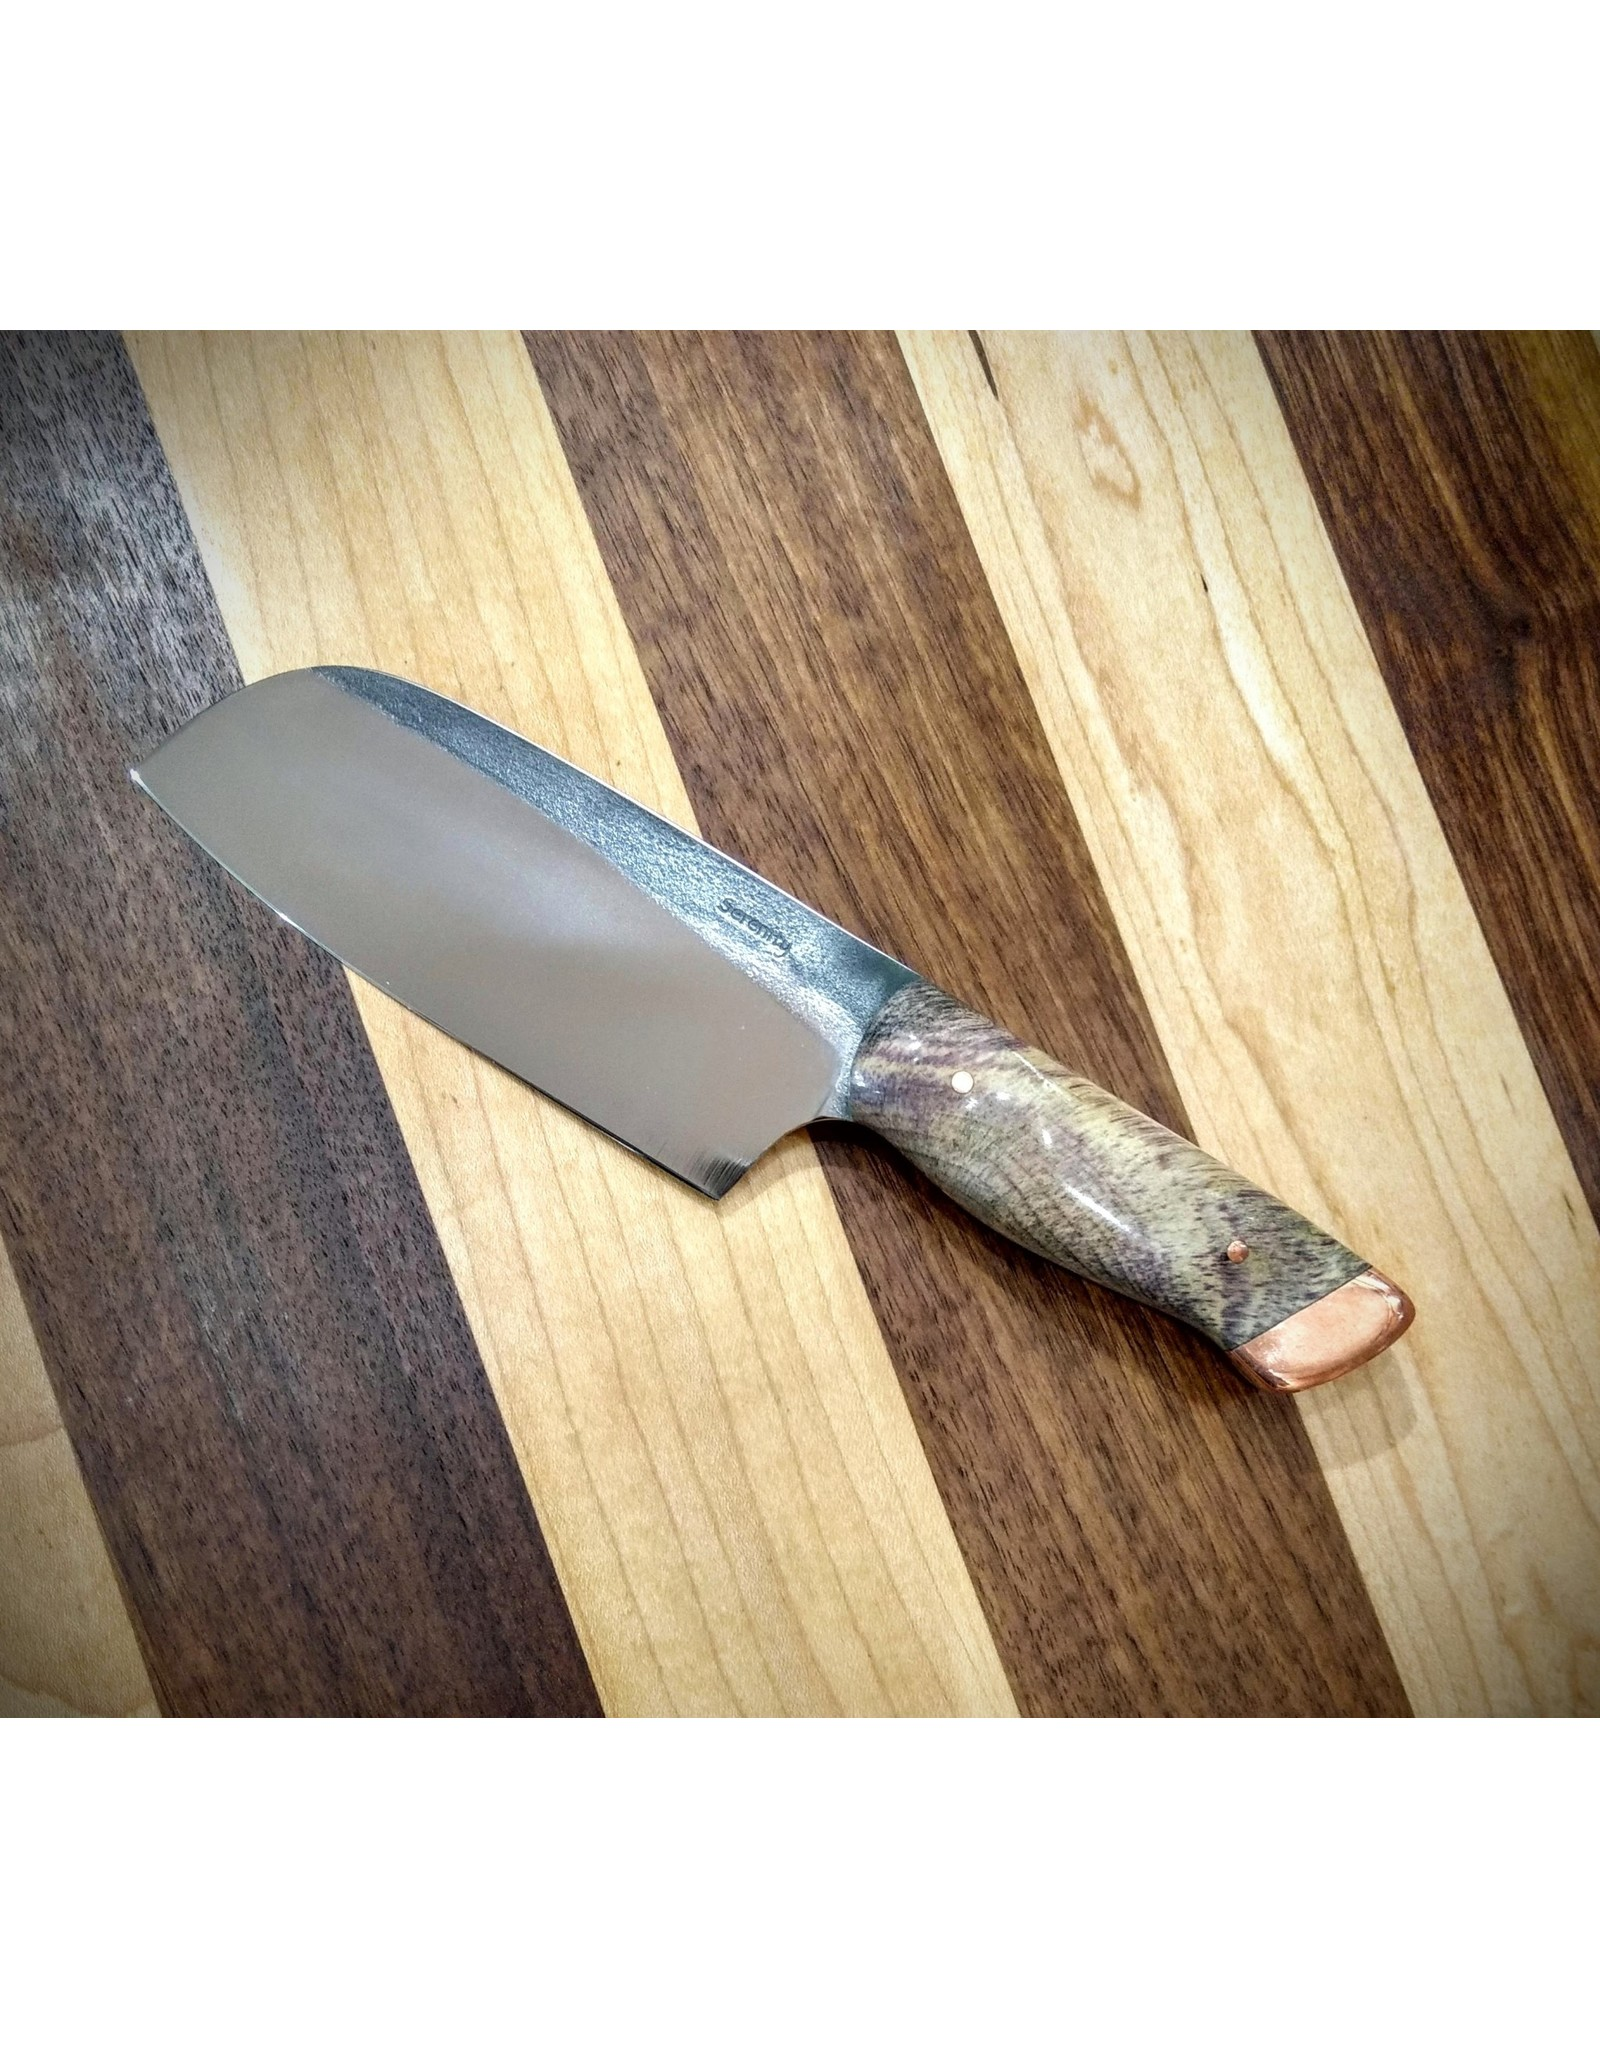 "Serenity 4 3/8"" Mini Santoku CPM Copper Pommel"